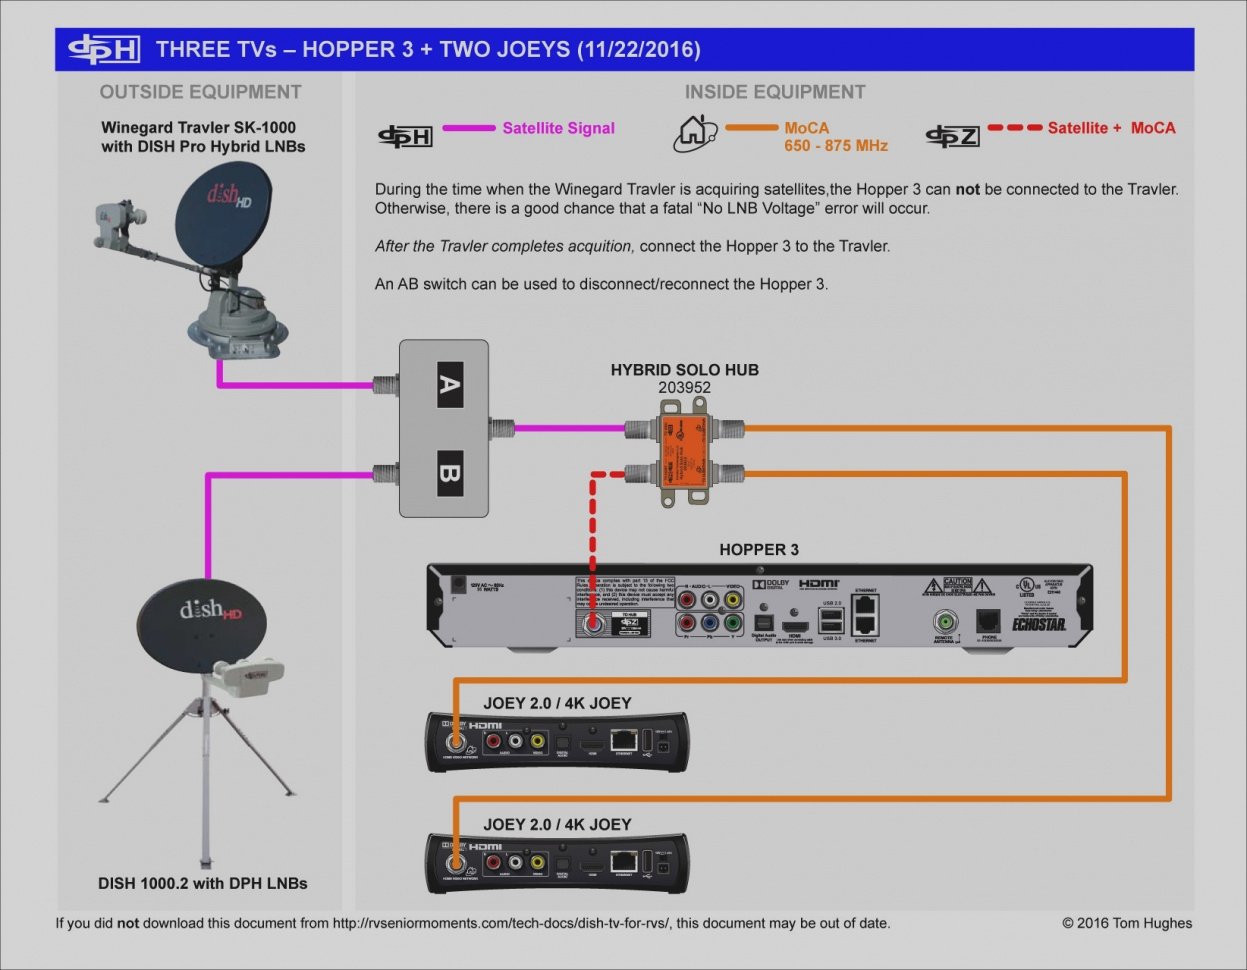 dish hopper 3 wiring diagram | free wiring diagram dish lnb cable wiring diagrams dish 722k receiver wiring diagrams